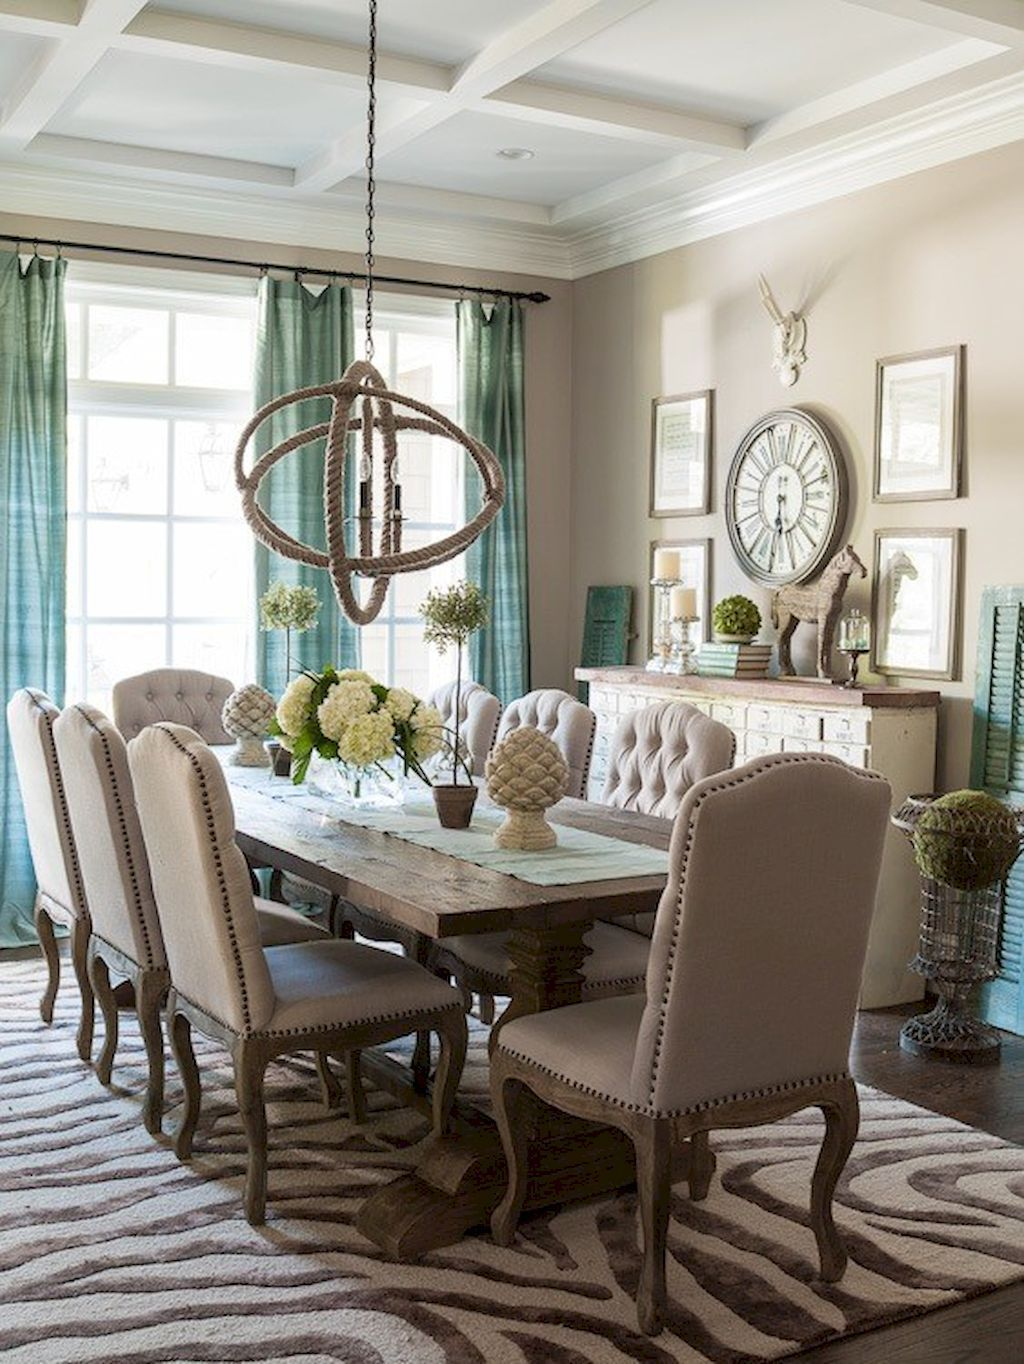 French Country Dining Room Decor Ideas 37 French Country Dining Room Turquoise Dining Room Country Dining Rooms